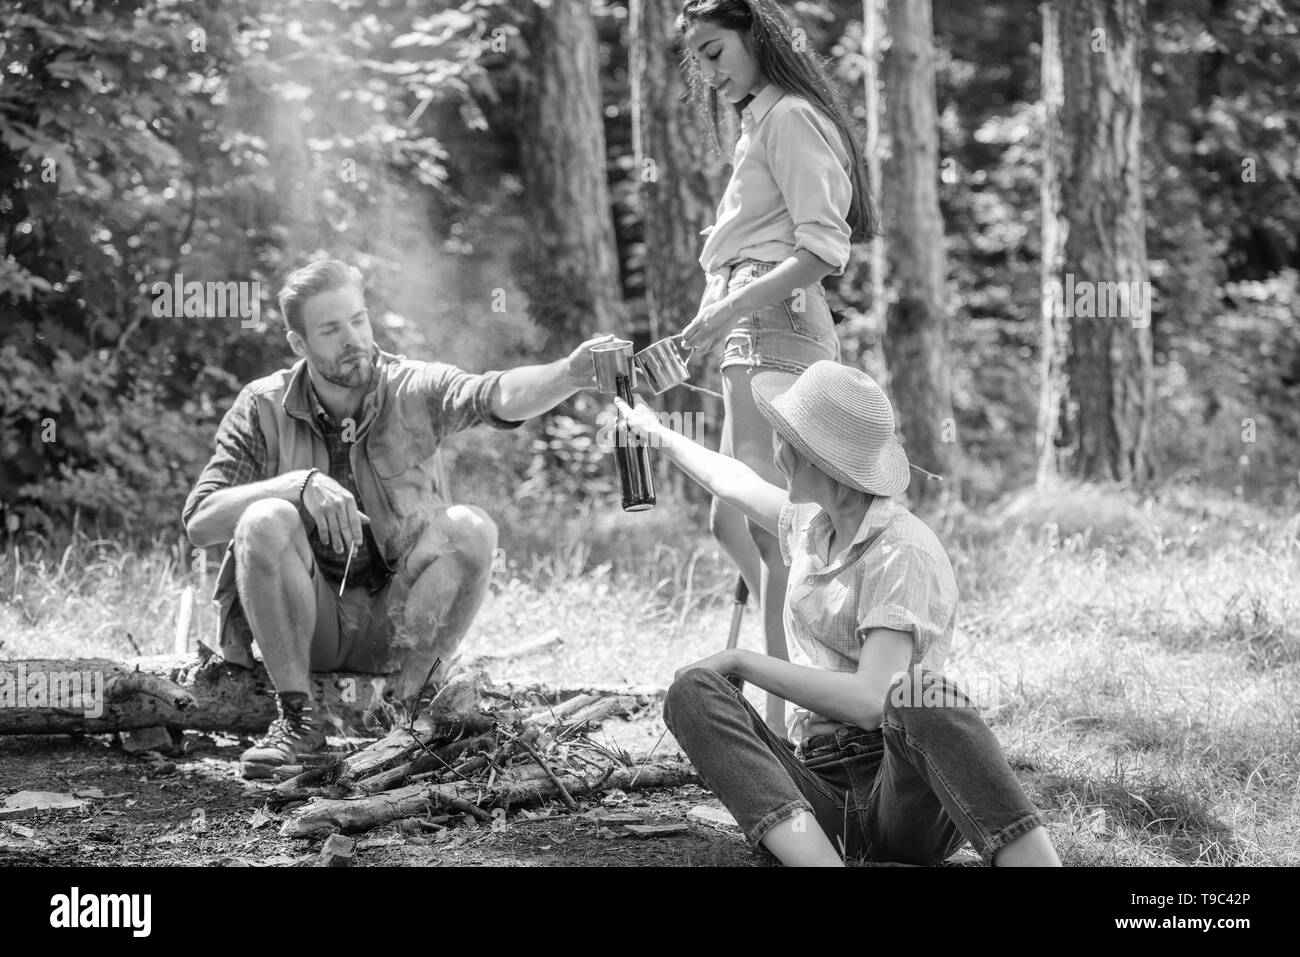 Take a break to have snack. Hikers on picnic. Company friends eat food snack nature background. Company hikers at picnic roasting marshmallows snacks eat food and drink. Spend great time on weekend. - Stock Image